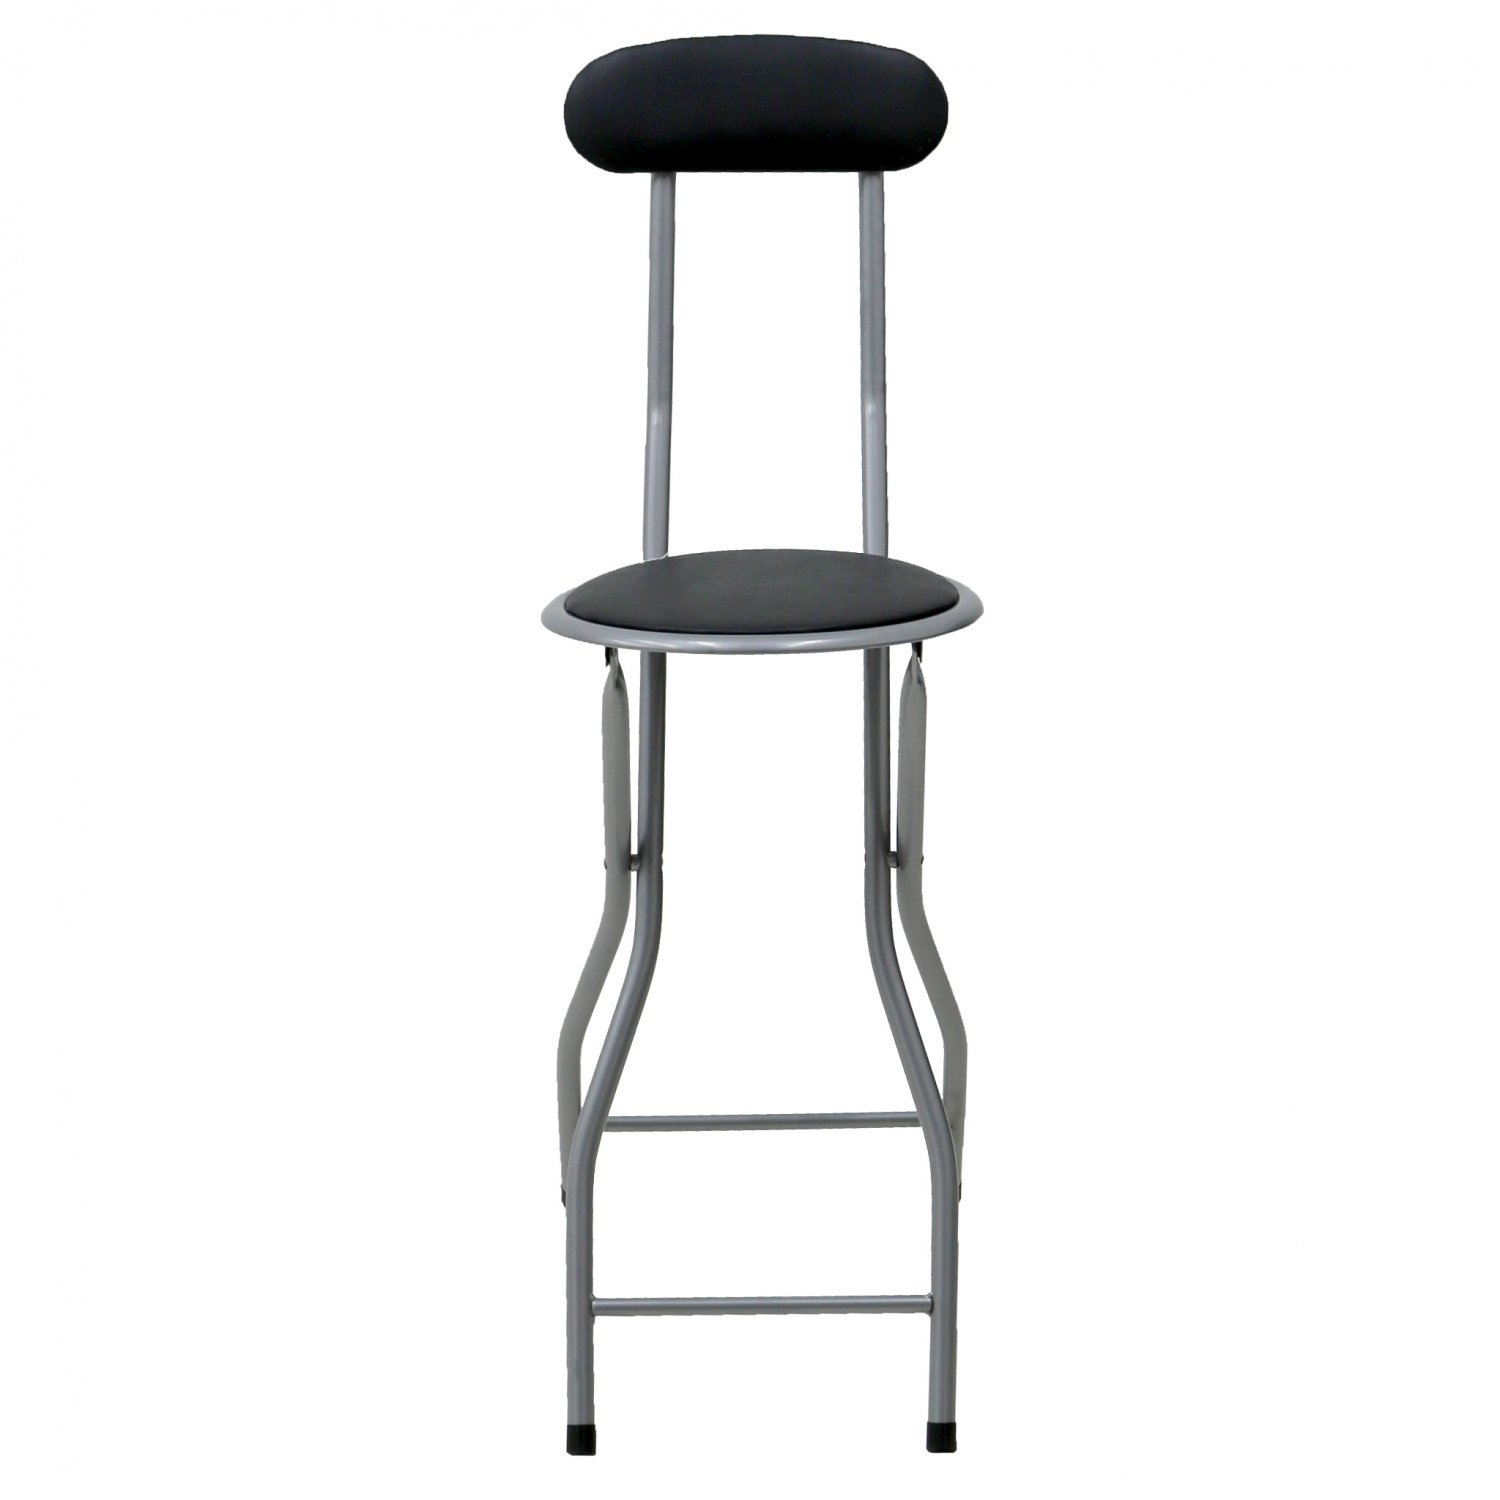 Padded Stool Black Padded Folding High Chair Breakfast Kitchen Bar